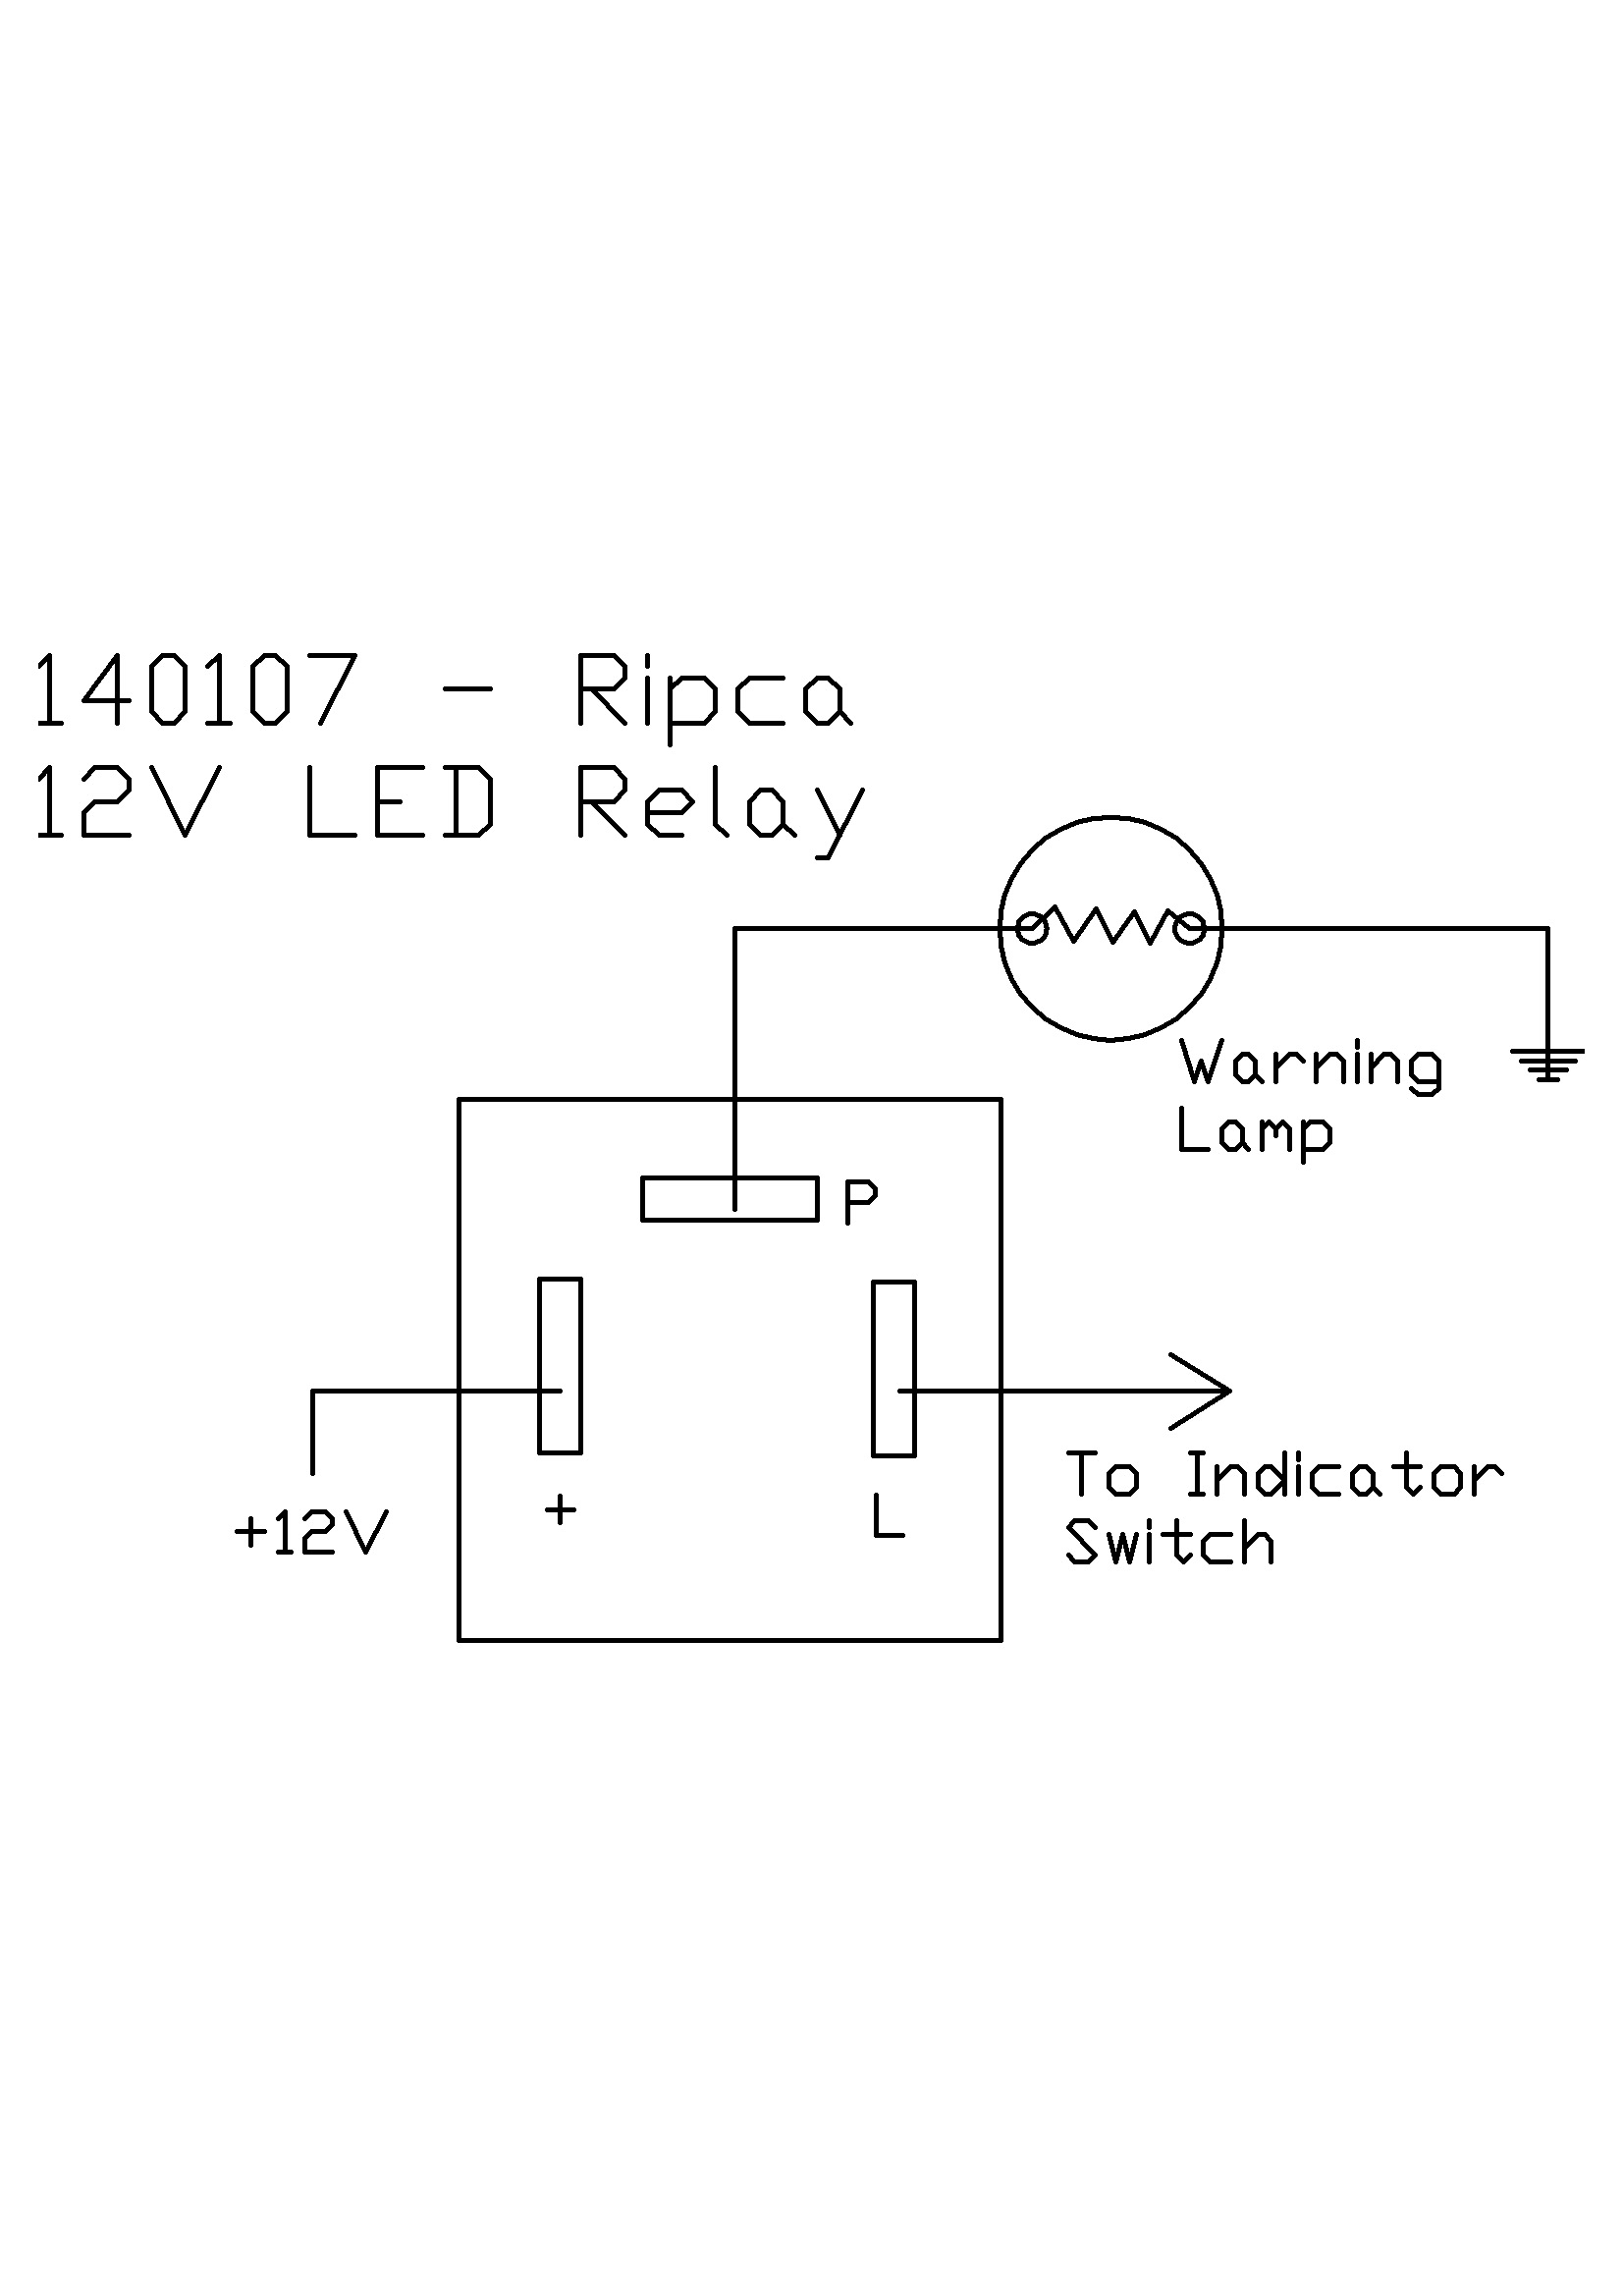 140107 ripca electronic indicator flasher wiring electrical instruments by flasher wiring diagram 12v at creativeand.co